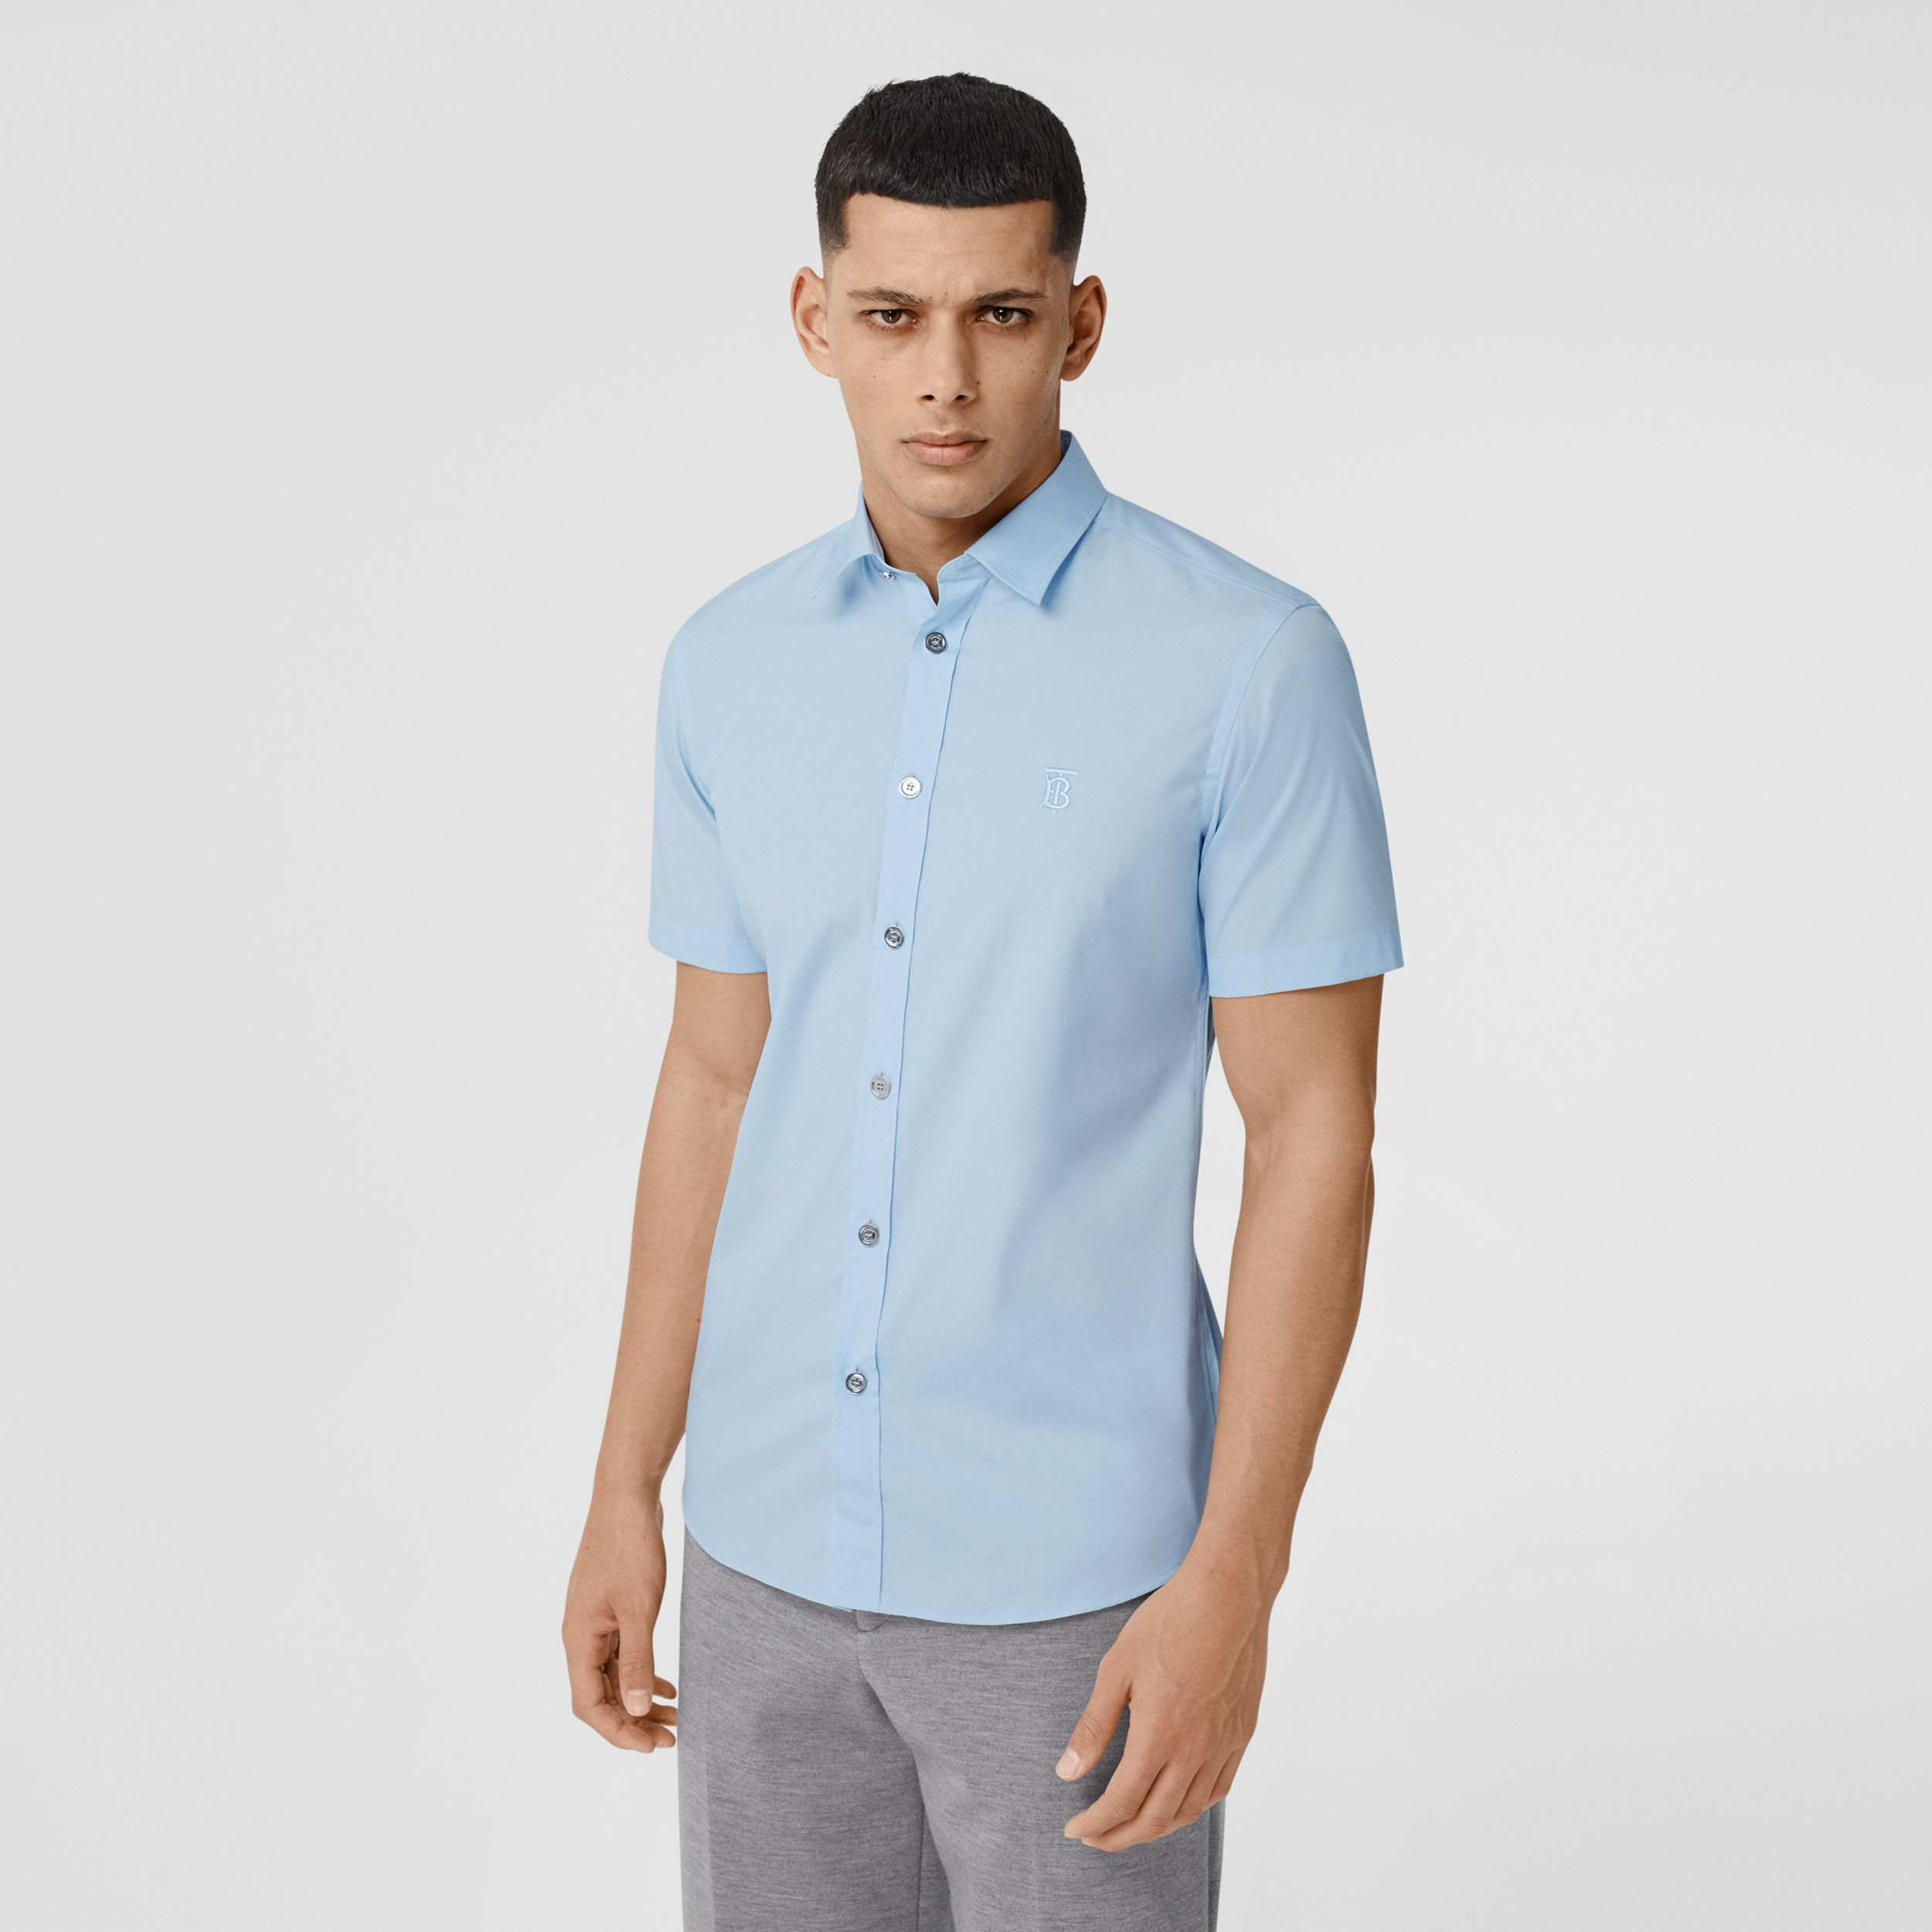 Short-sleeve Monogram Motif Stretch Cotton Shirt in Pale Blue - Men | Burberry - 1